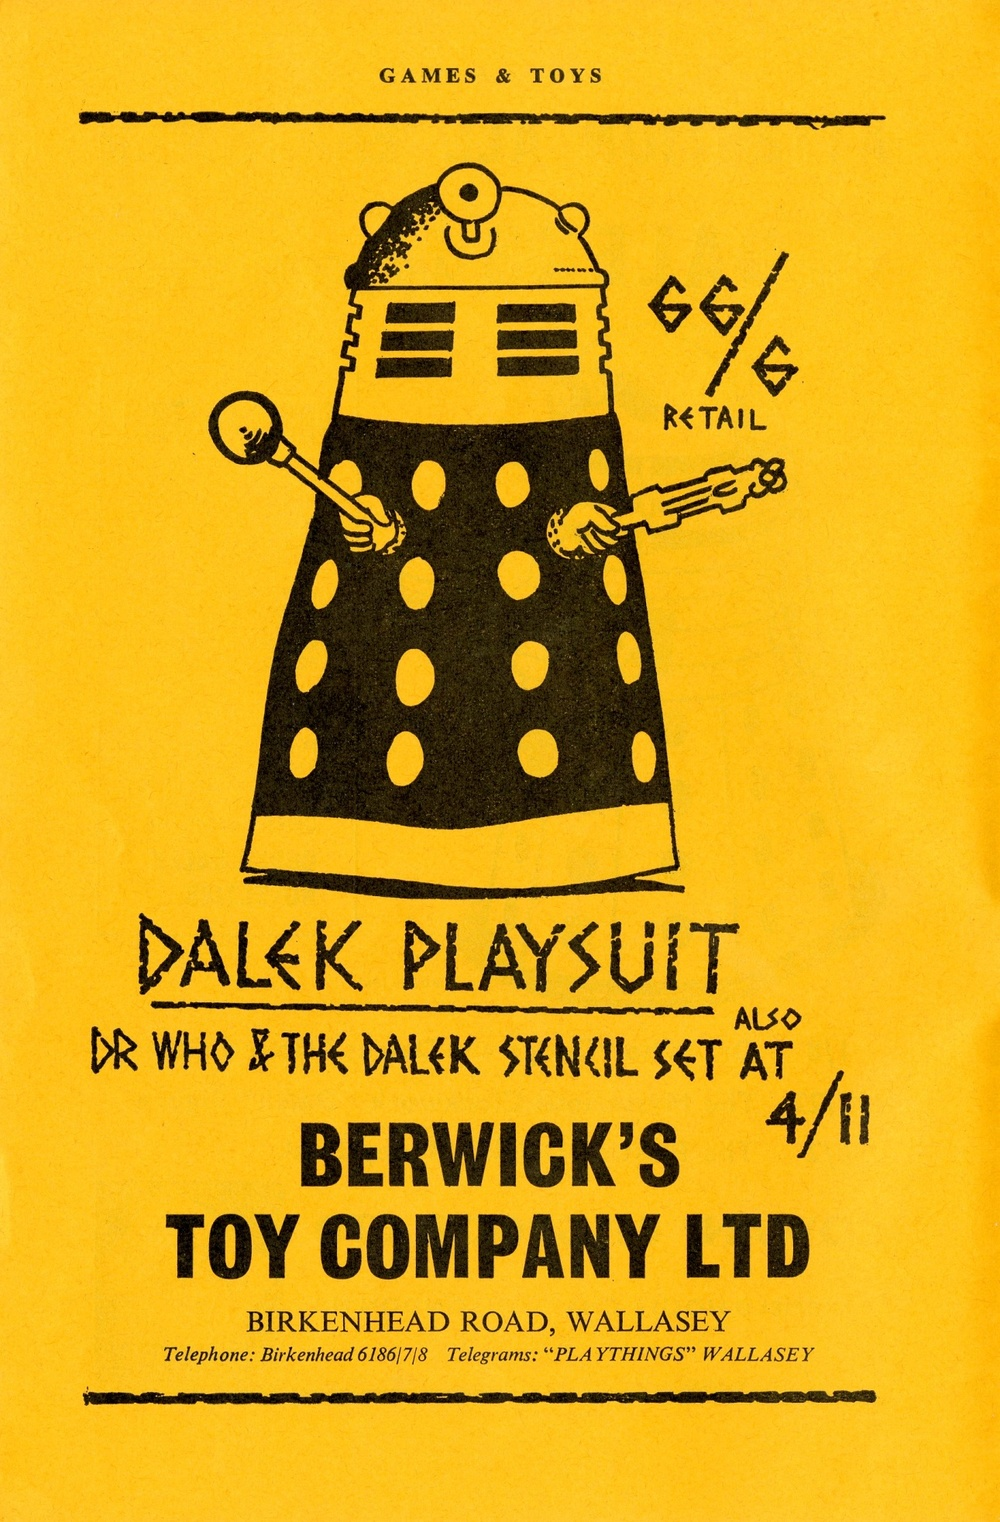 Ad. for Berwick's Toy Company Ltd., Dalek playsuit in the Supplement to Games and Toys, September 1965